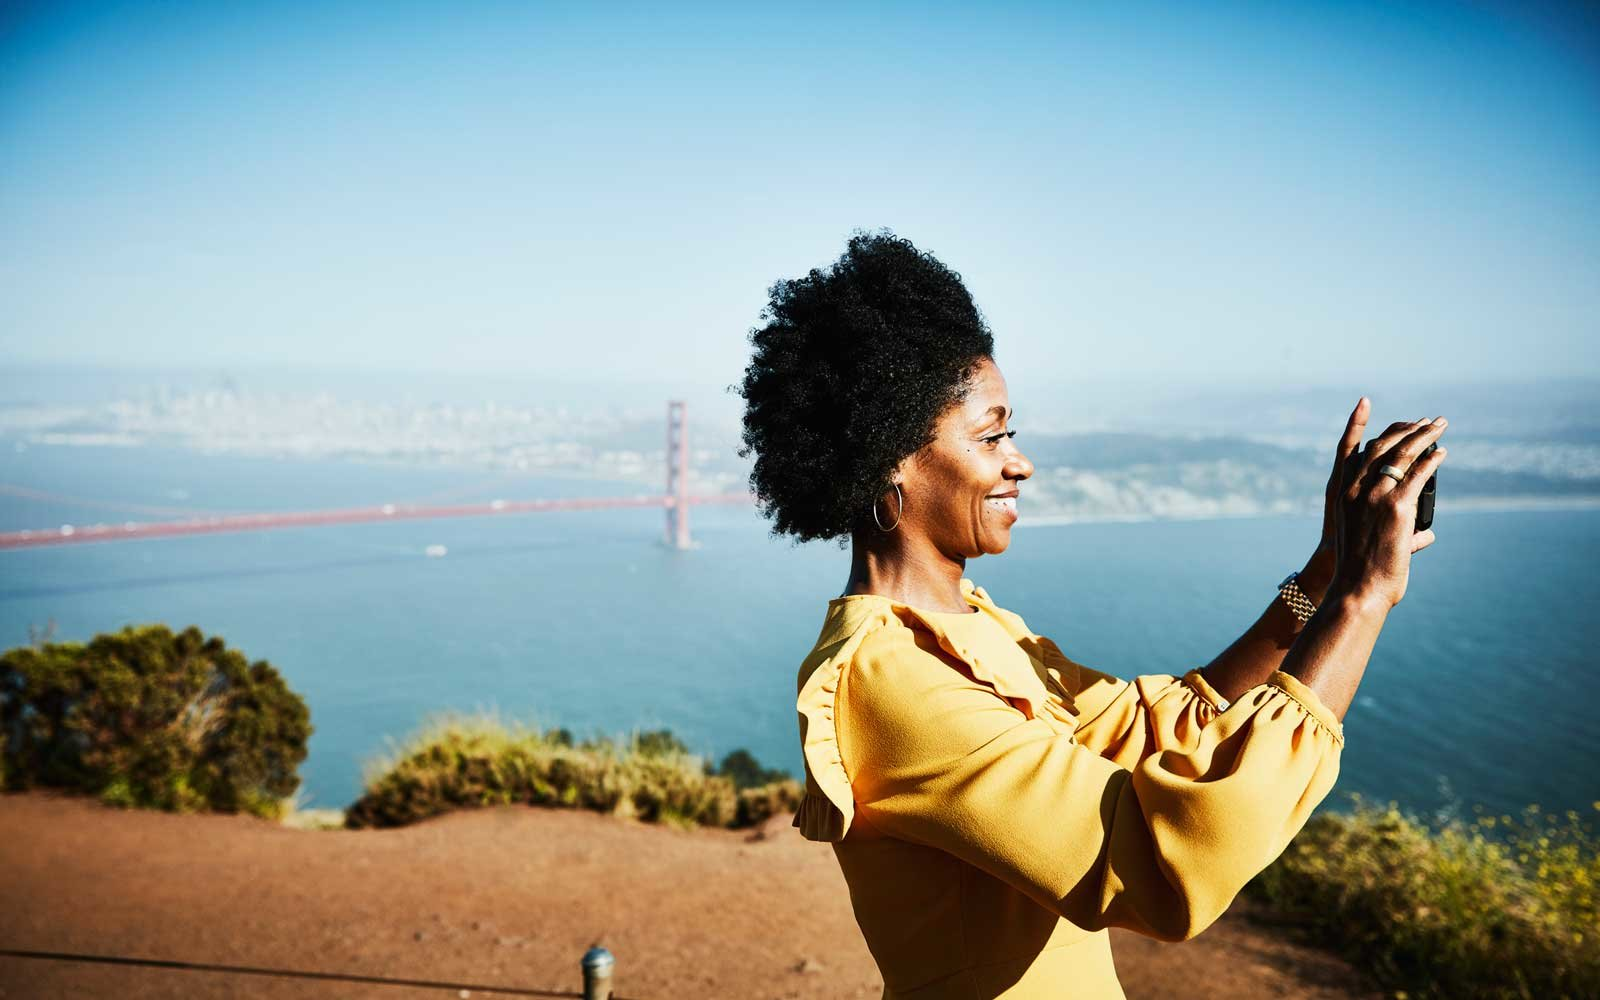 Smiling woman taking photo with smartphone while standing at vista above San Francisco